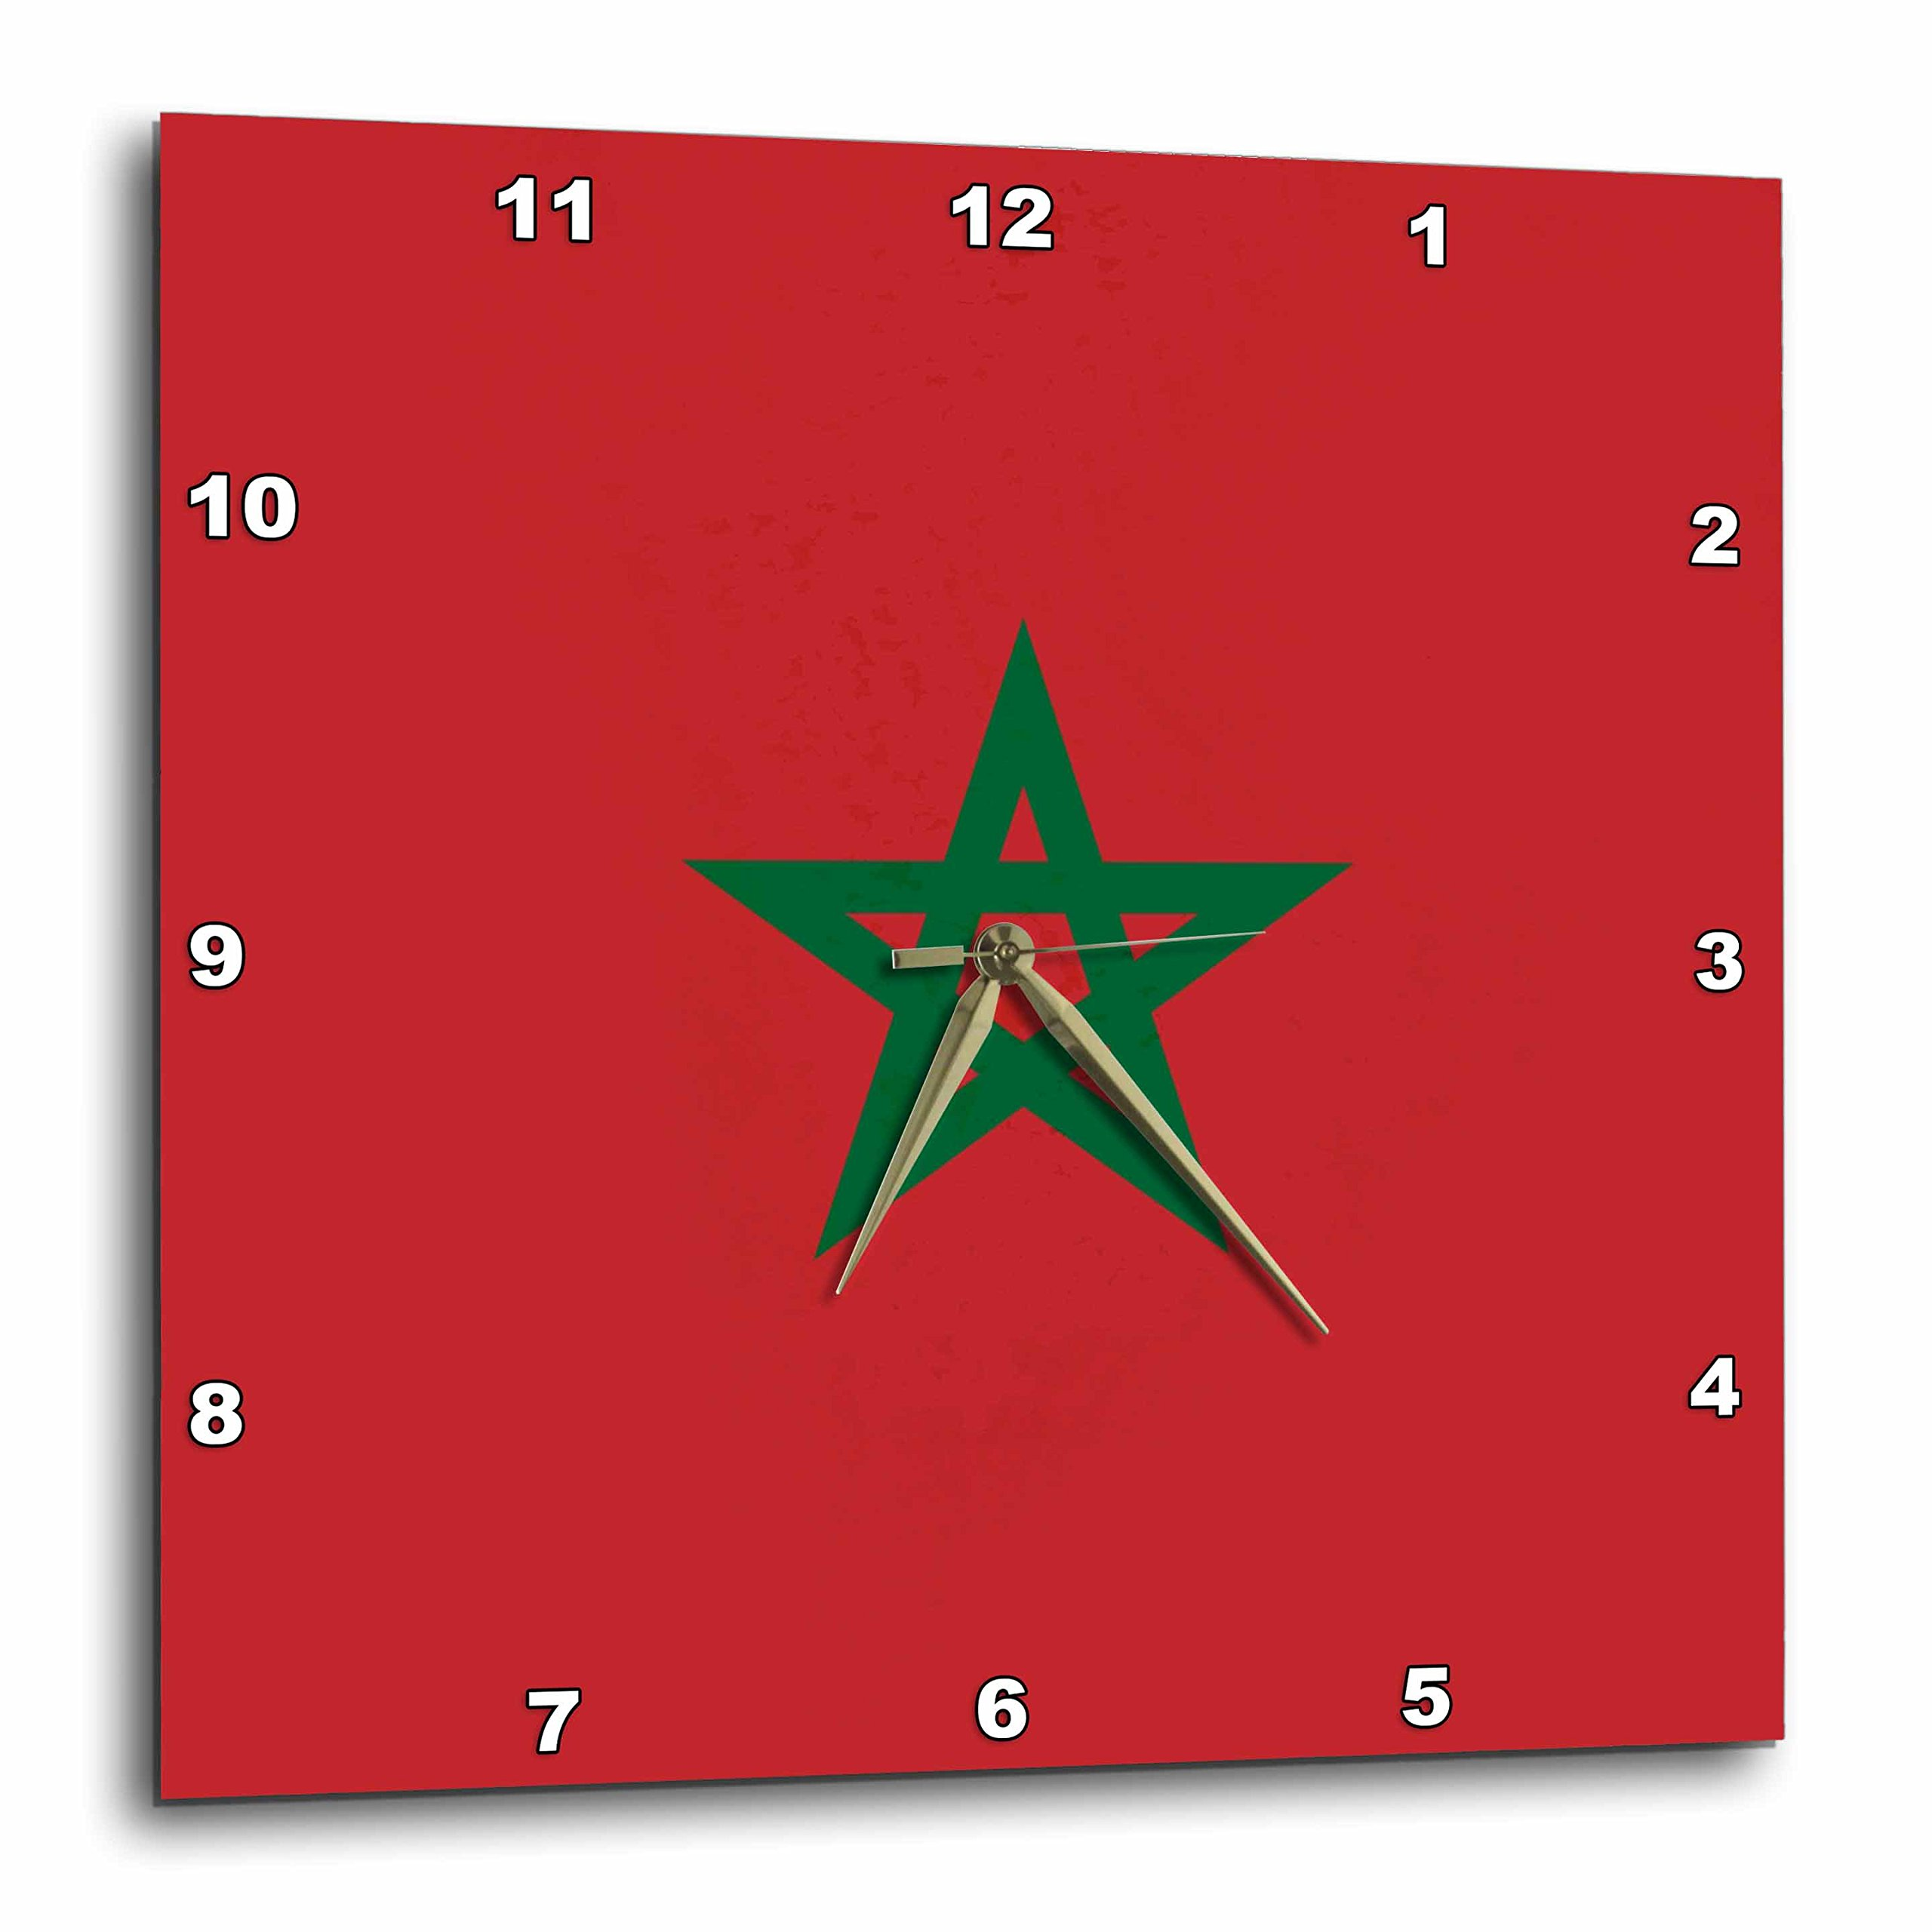 3dRose DPP_158383_3 Flag of Morocco Moroccan Red with Green Pentagram Star Seal Ensign Africa African World Country Wall Clock, 15 by 15-Inch